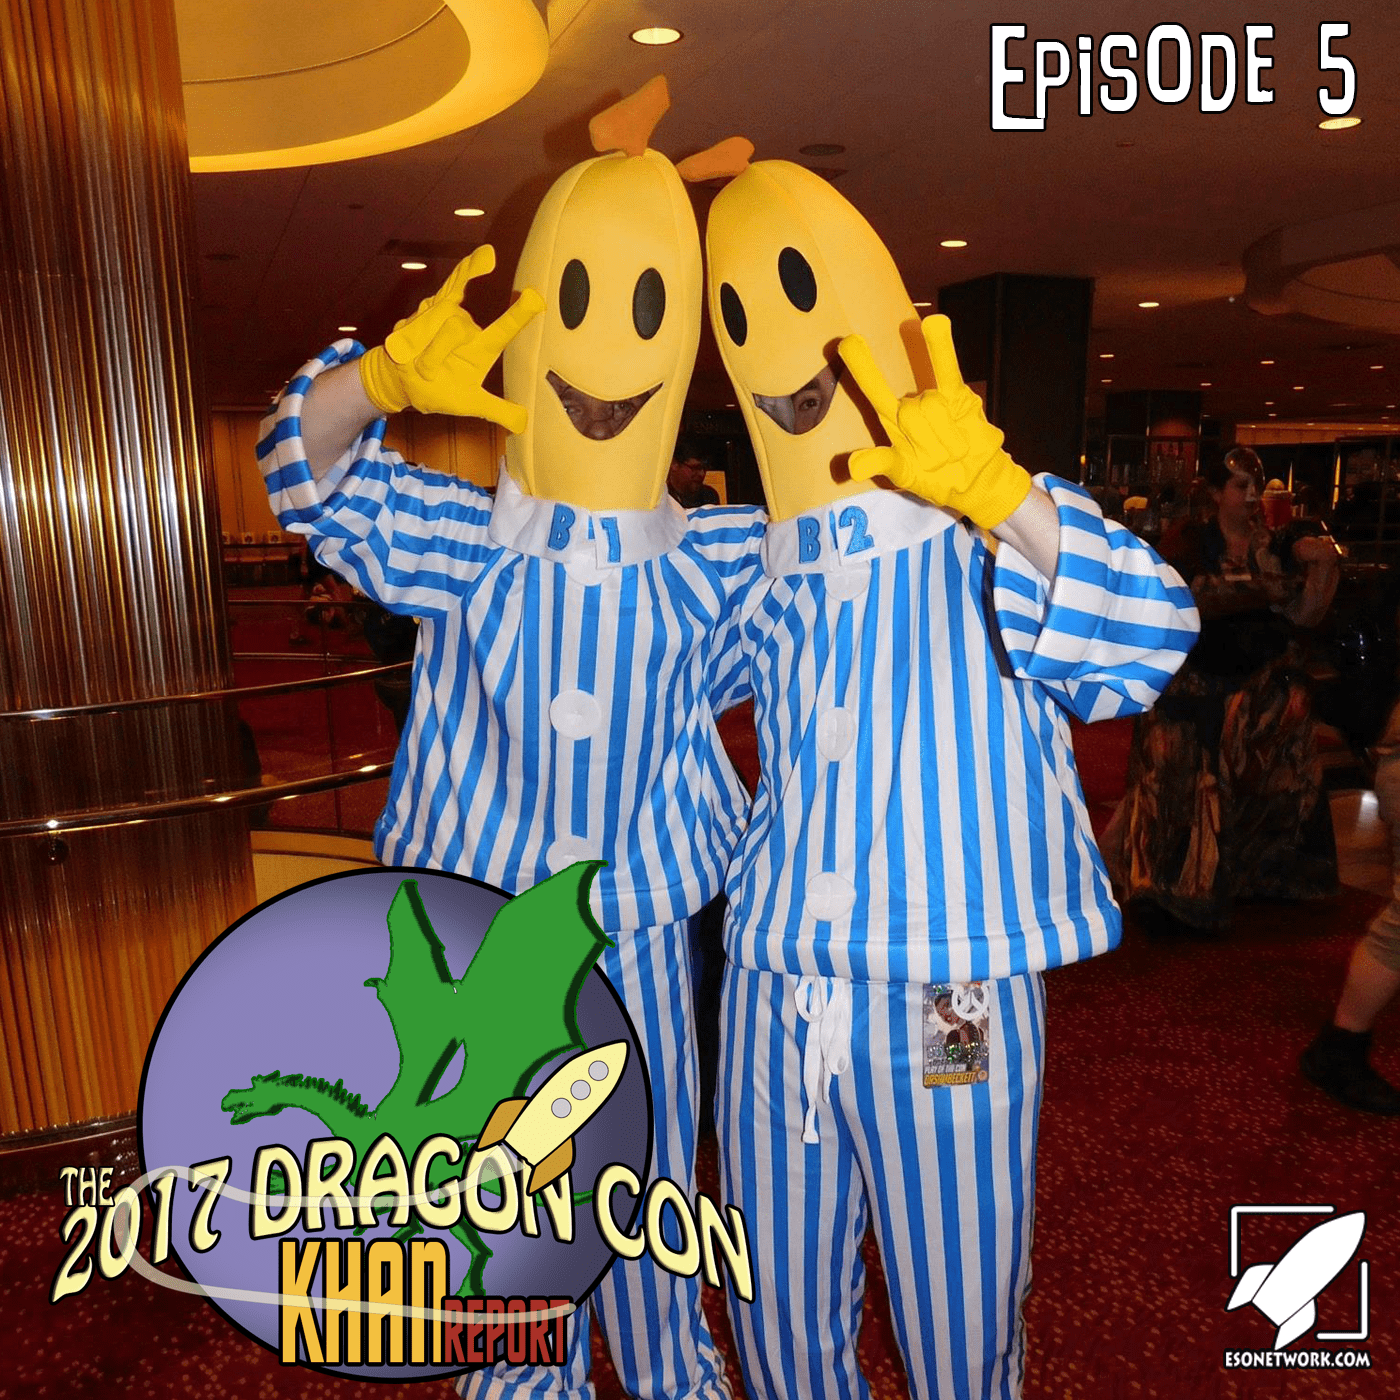 The 2017 Dragon Con Khan Report Ep 5